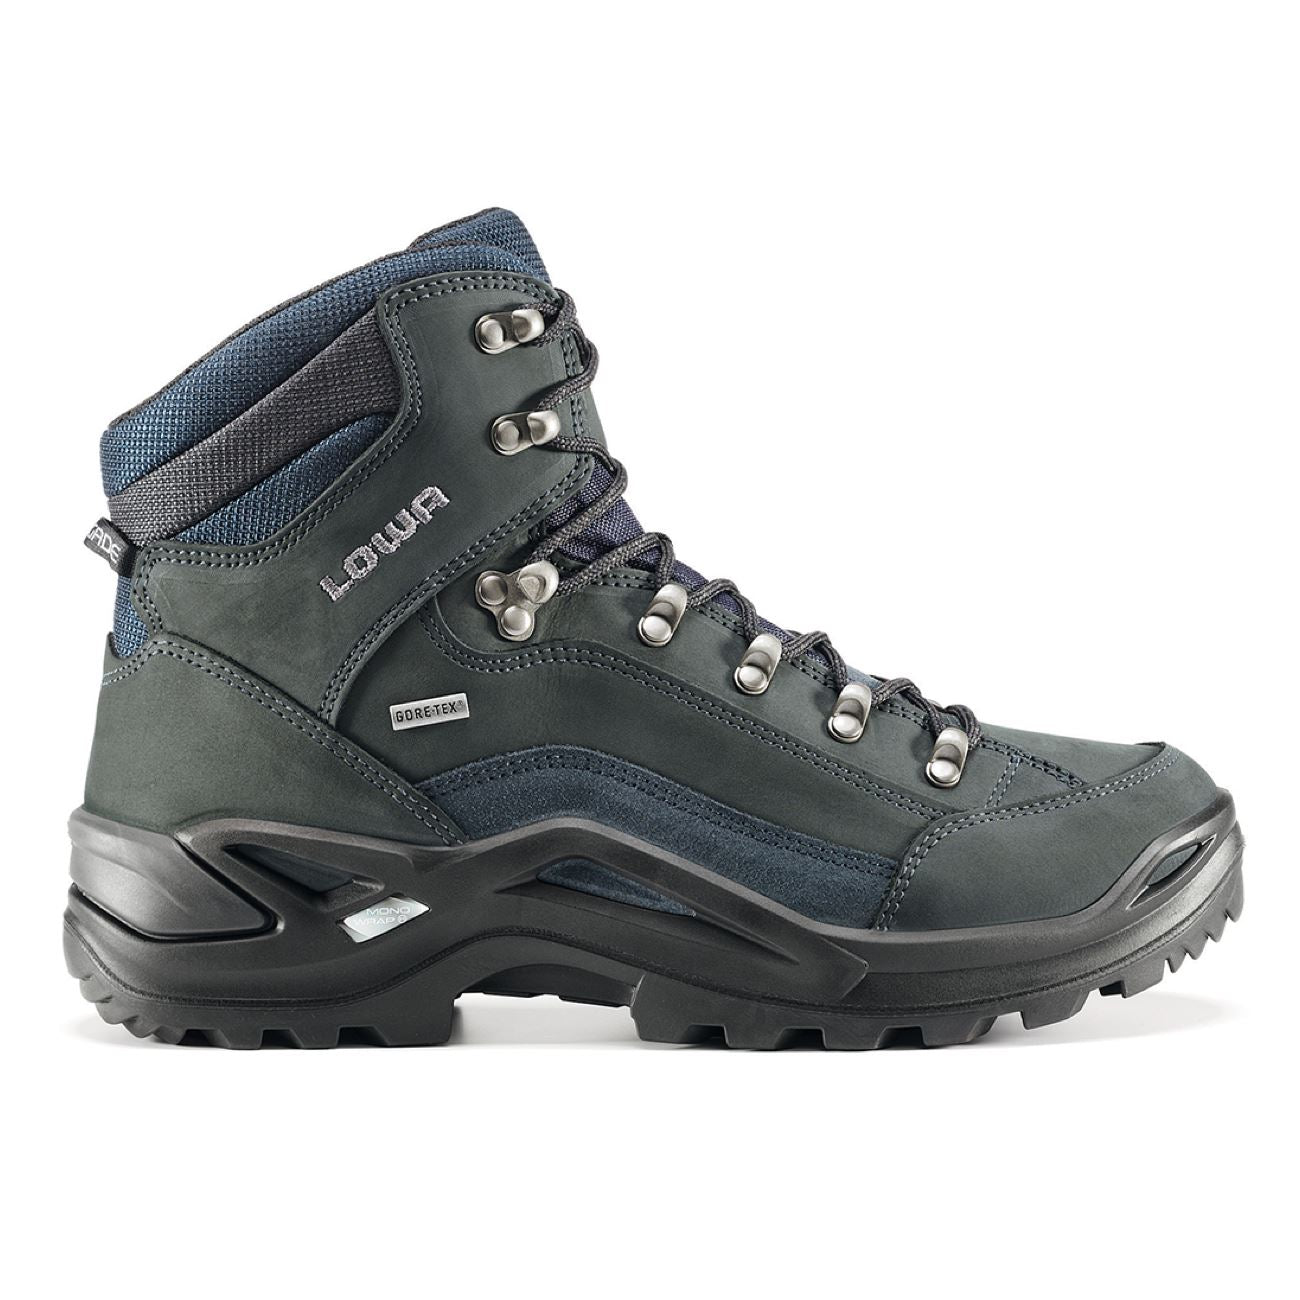 LOWA, Renegade GTX Mid, WXL-Wide, Men's, Dark Grey/Navy Hiking Boots LOWA Dark Grey/Navy 10UK